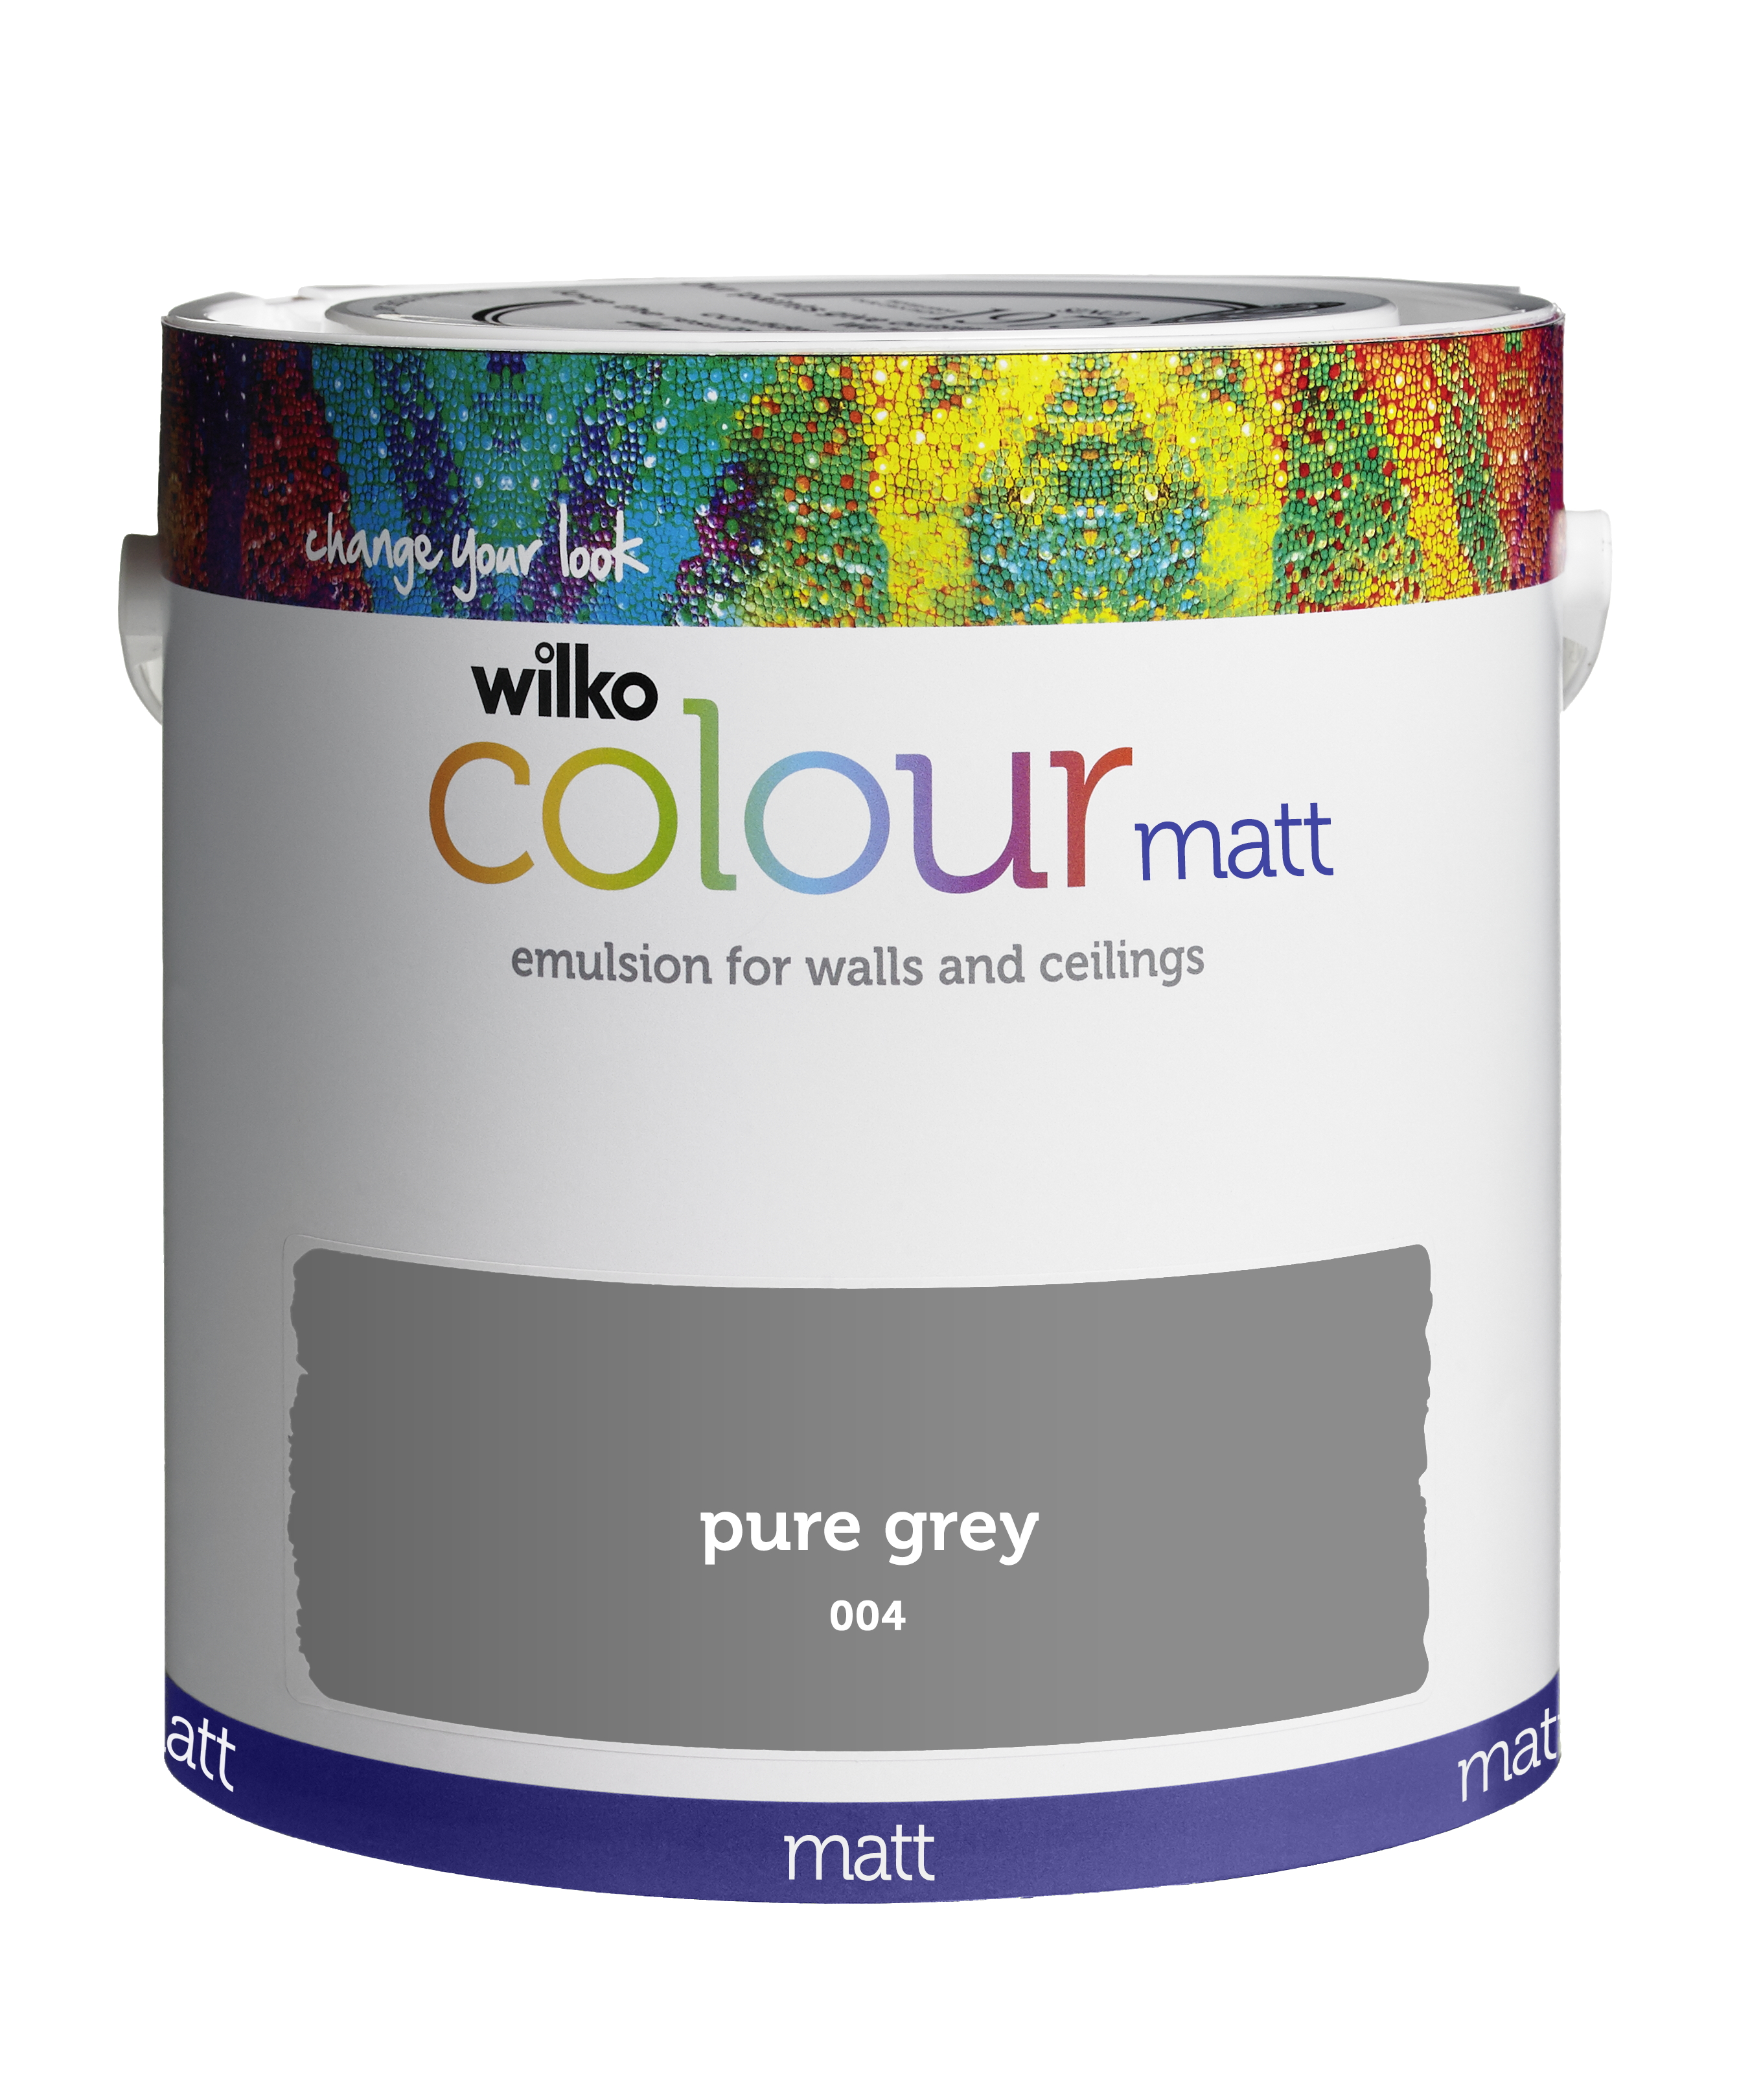 Best Interior Paint Uk: How To Use Dark Paint But Keep A Room Light